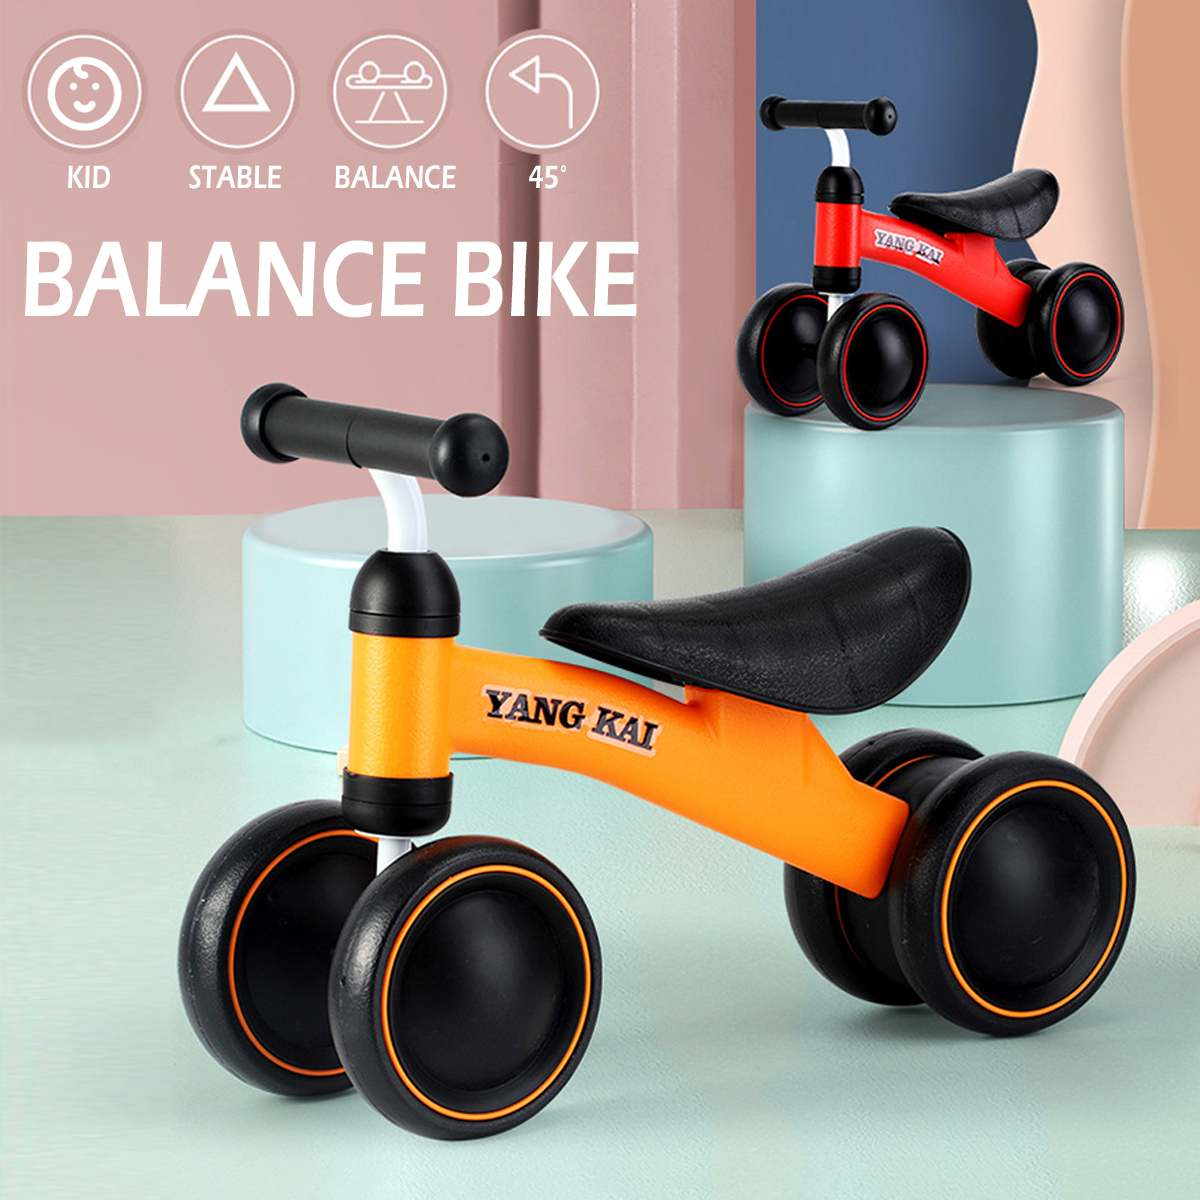 4 Wheels Baby Balance Bike Bicycle Children Walker Toddler Bike Children's Push Scooter Outdoor Ride on Toys Cars Kids Toys Gift